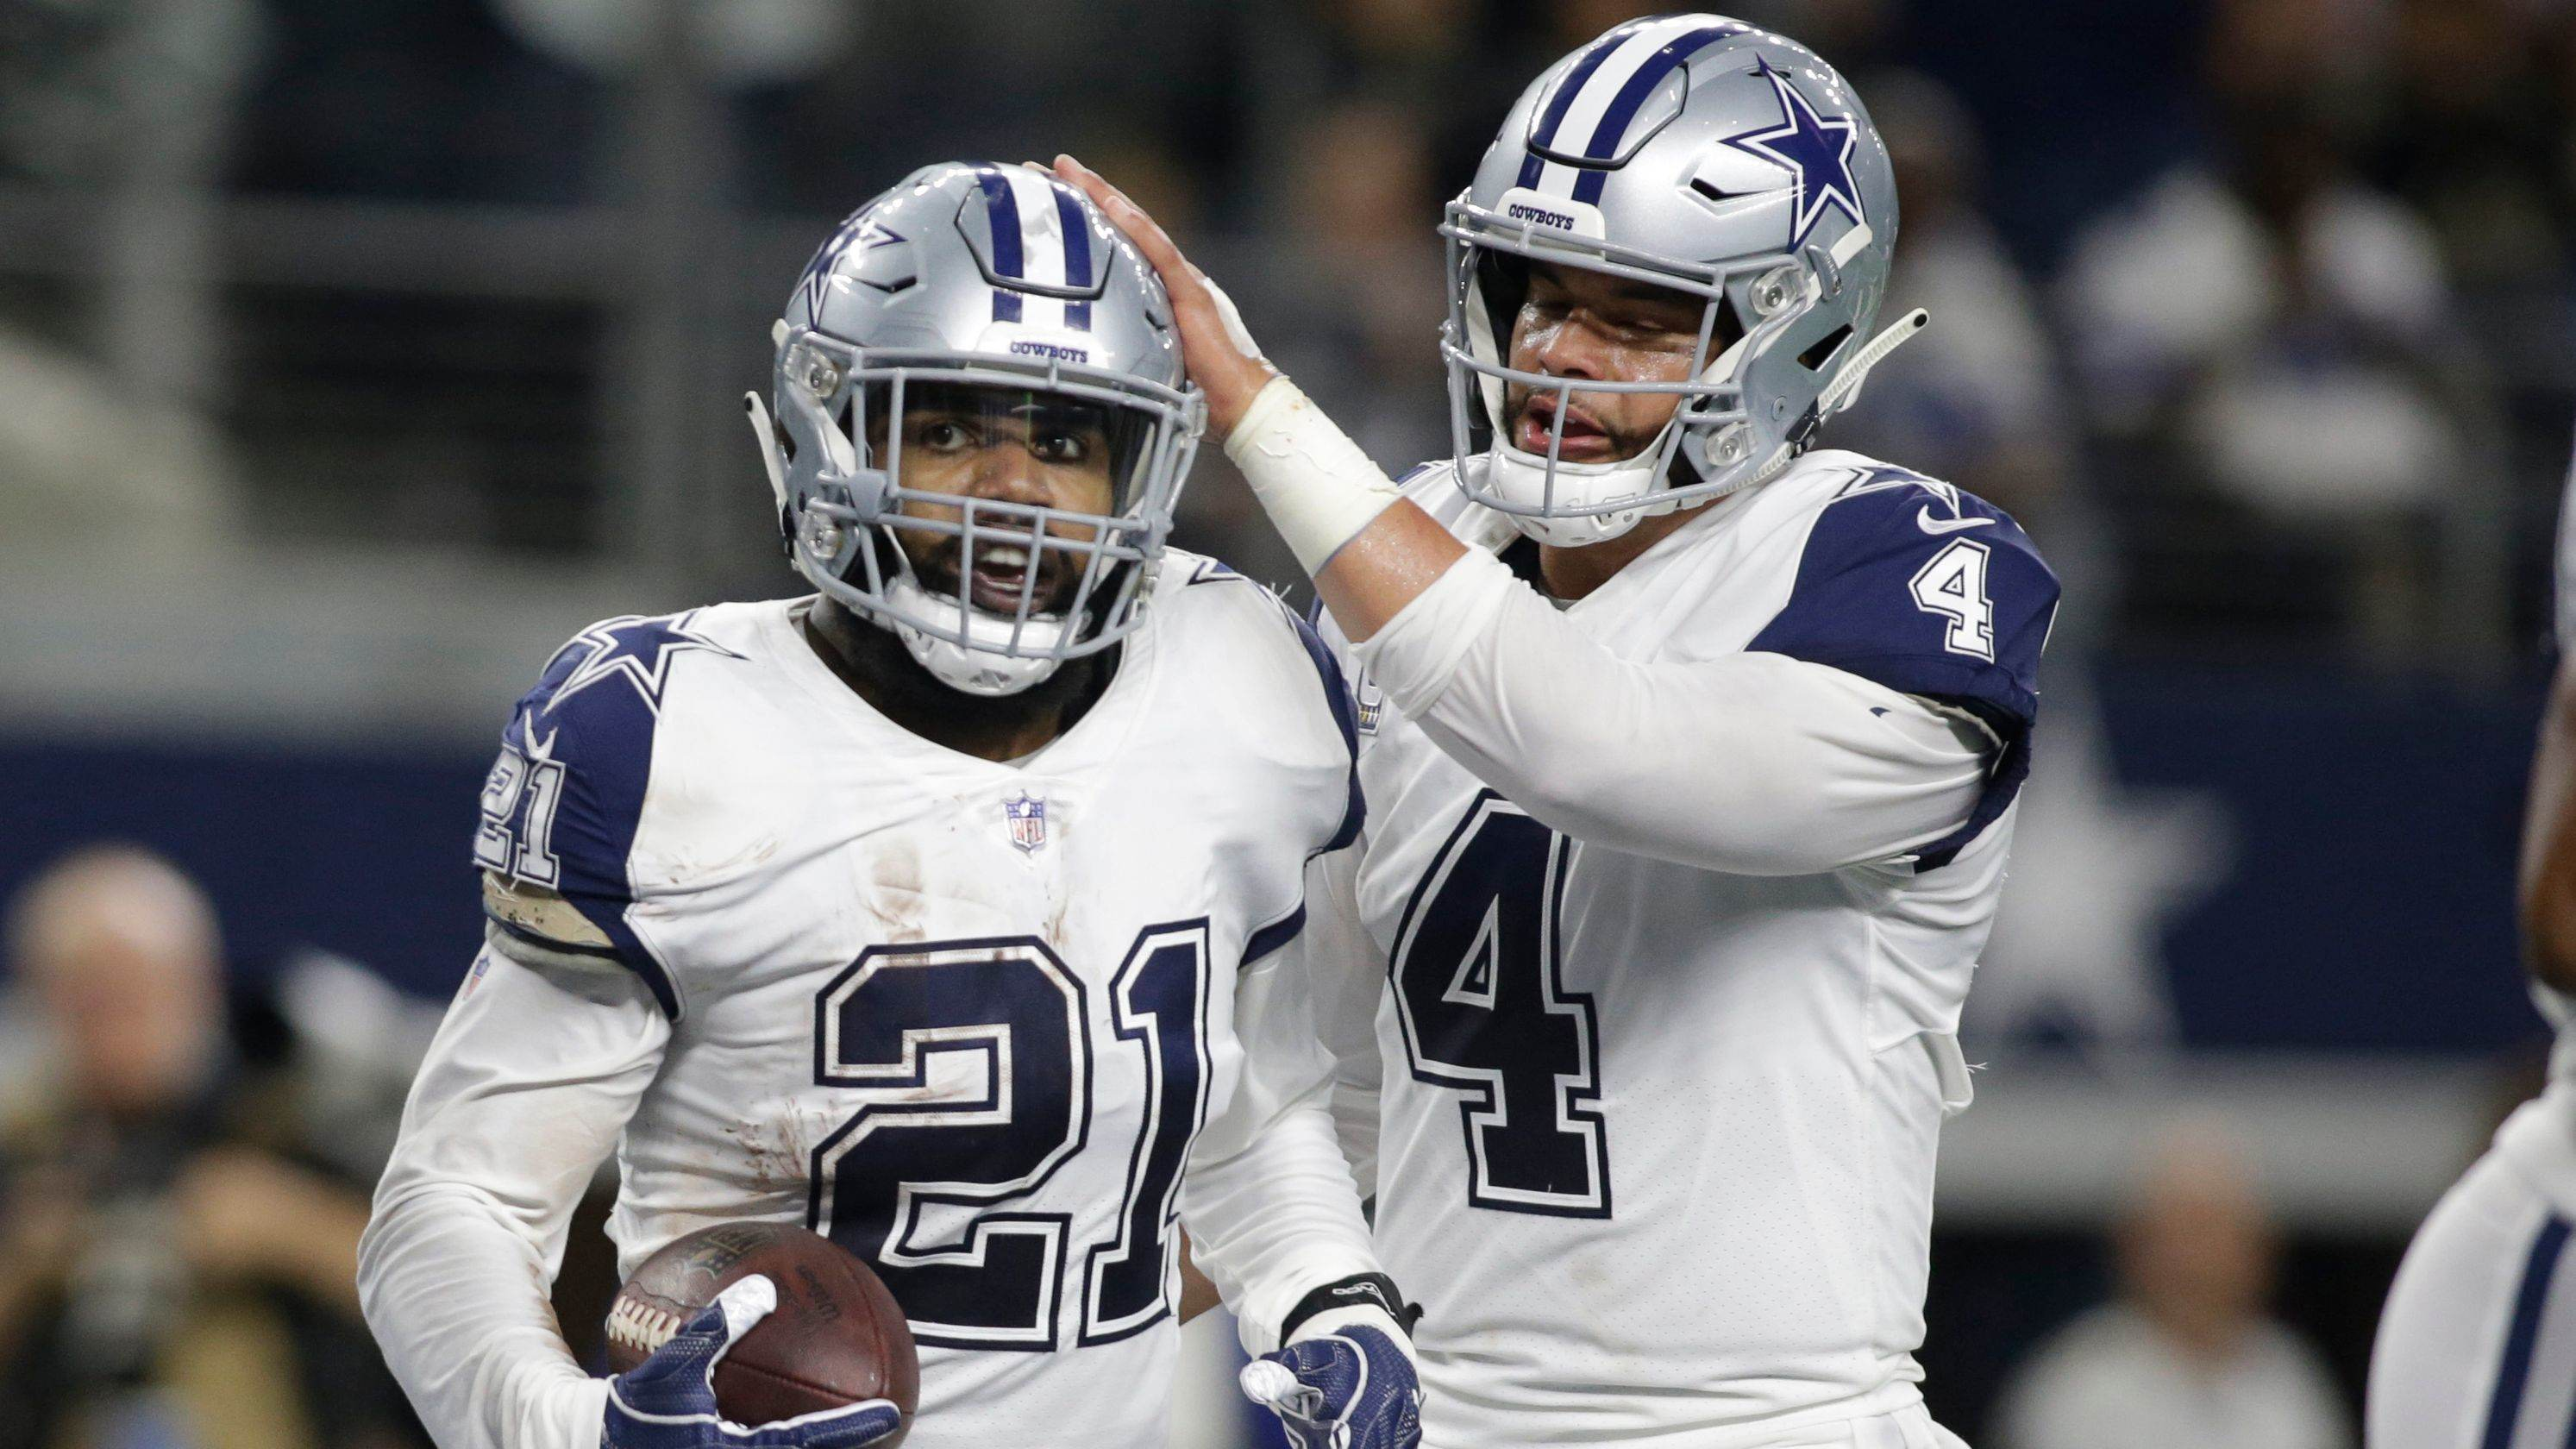 Jwilliams_dallas-cowboys_dallas-cowboys-still-plagued-by-red-zone-struggles